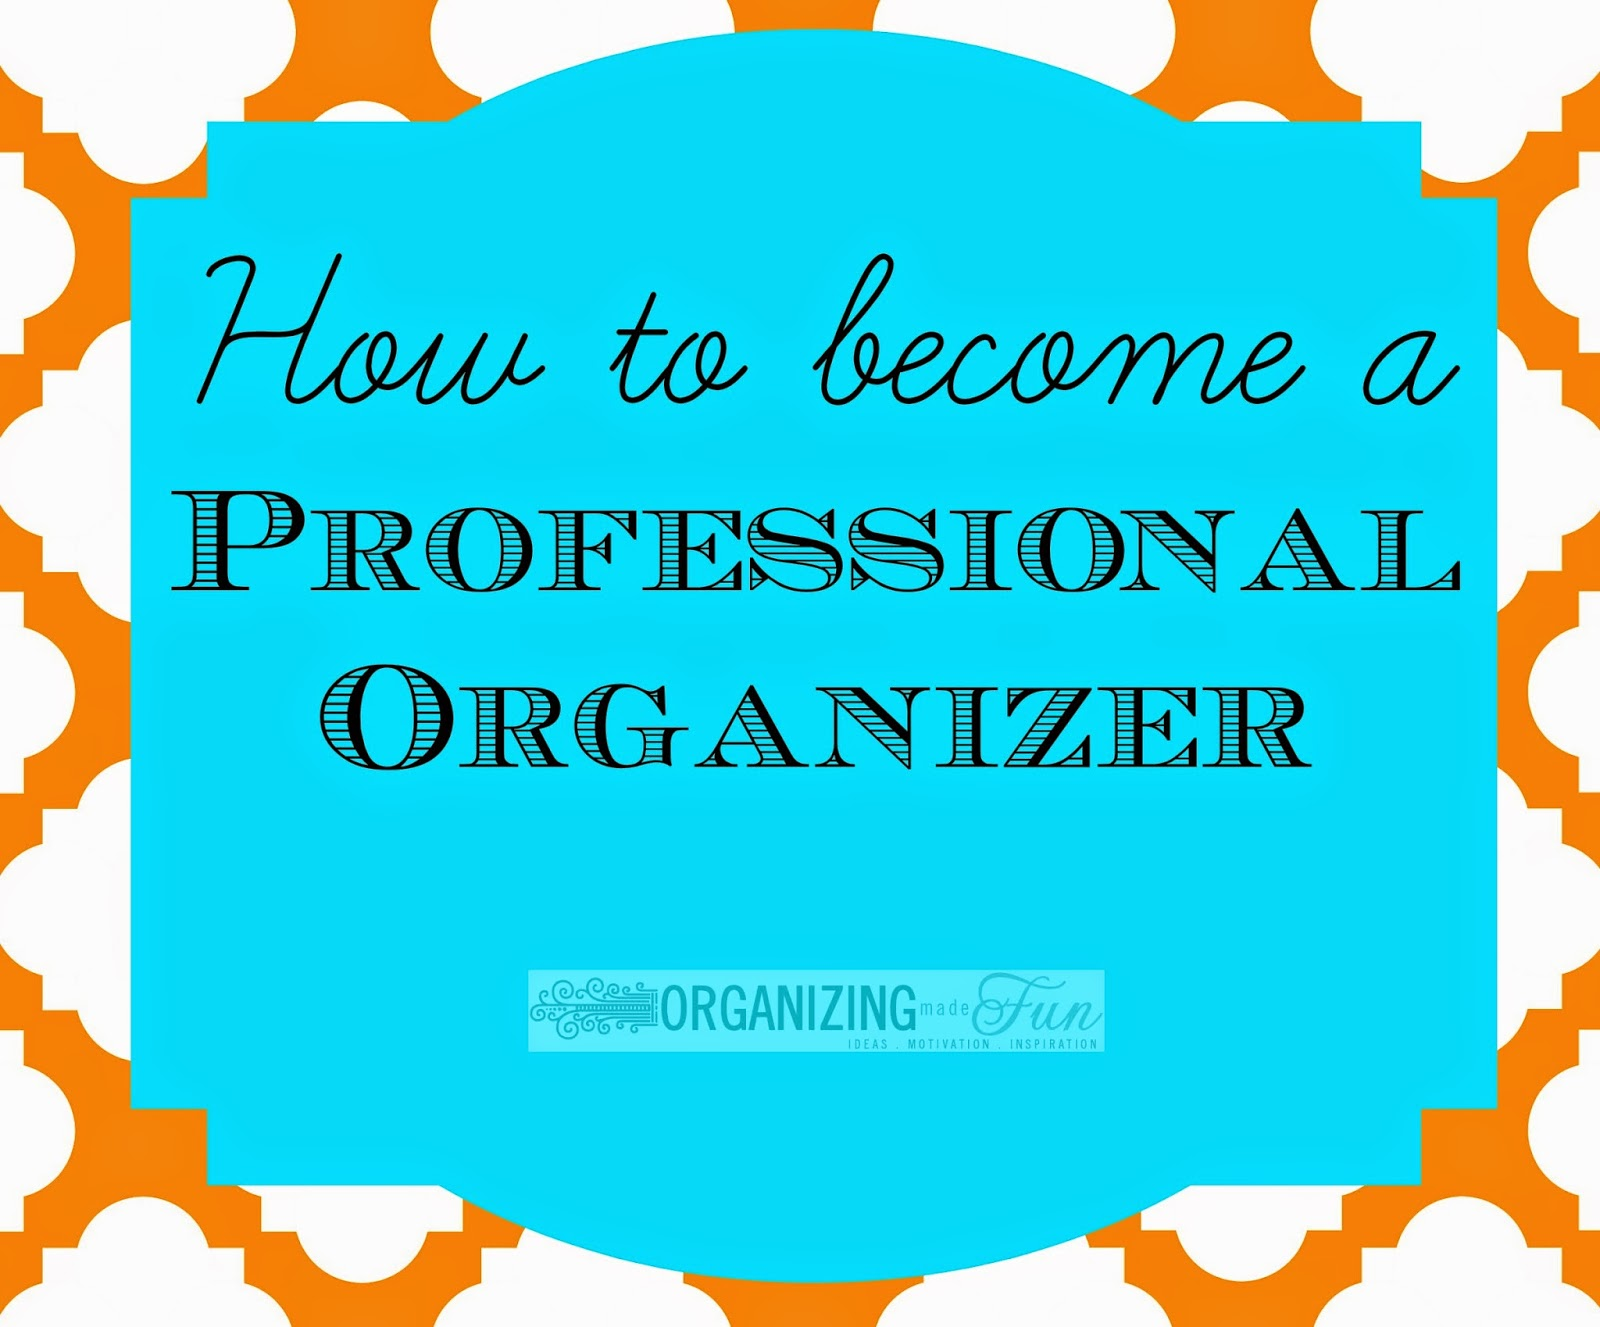 If you'd like to know how to become a professional organizer, click here :: OrganizingMadeFun.com